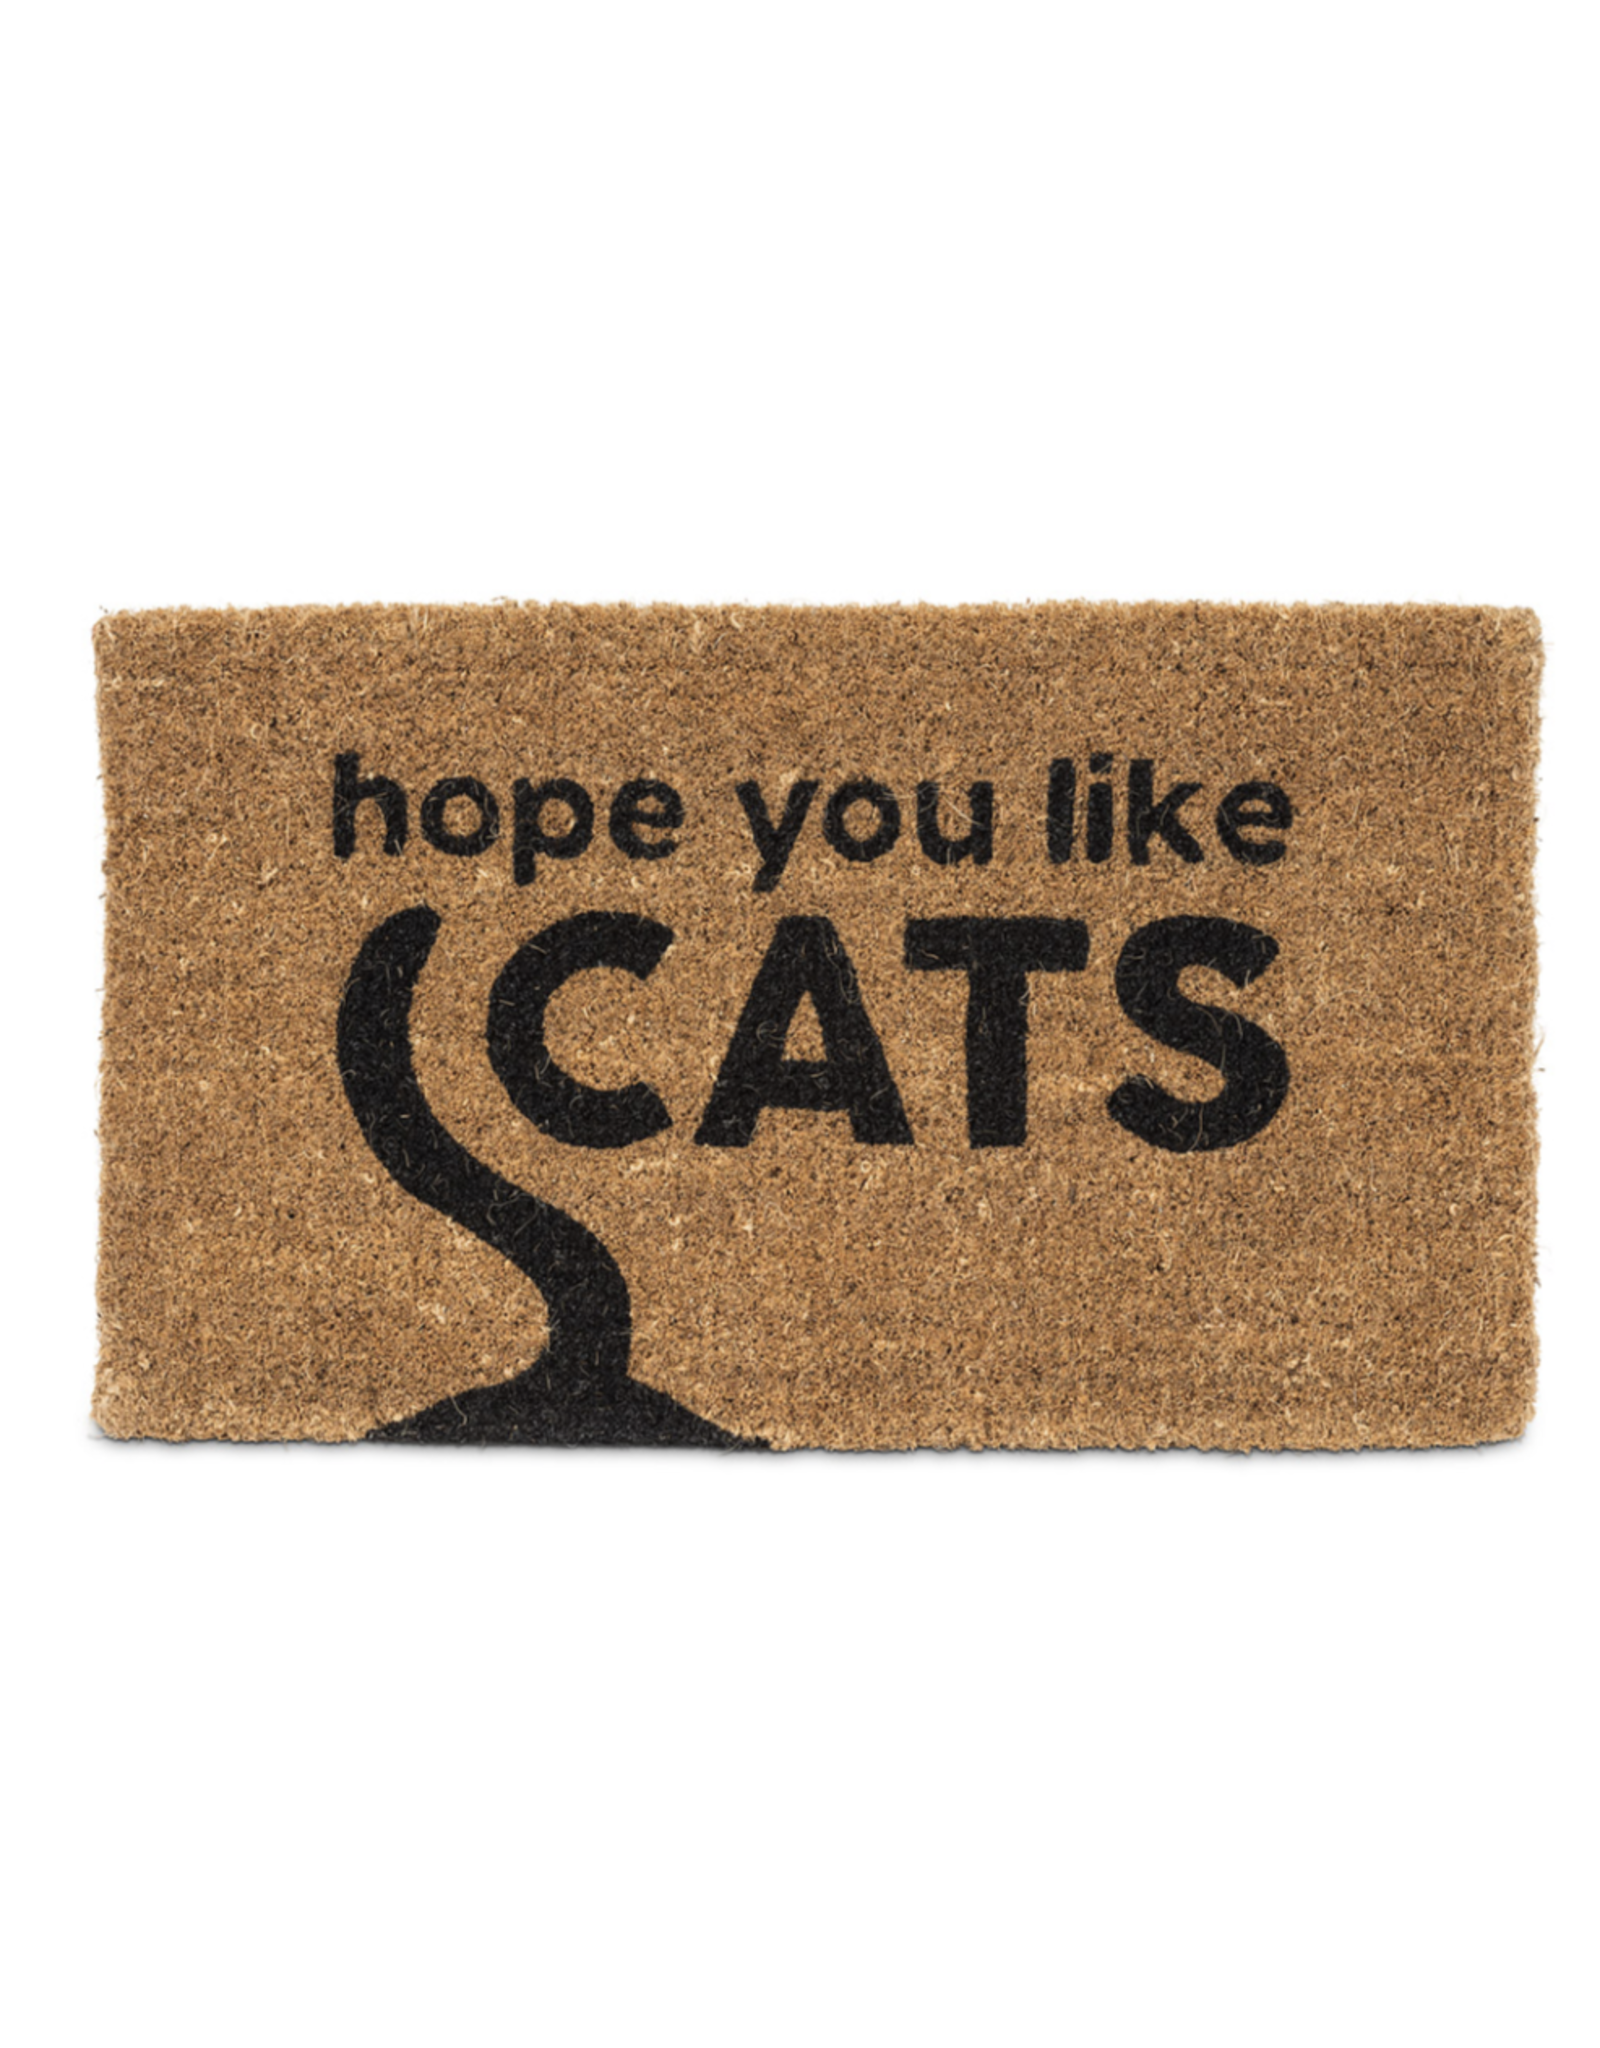 Hope You Like Cats Graphic Doormat